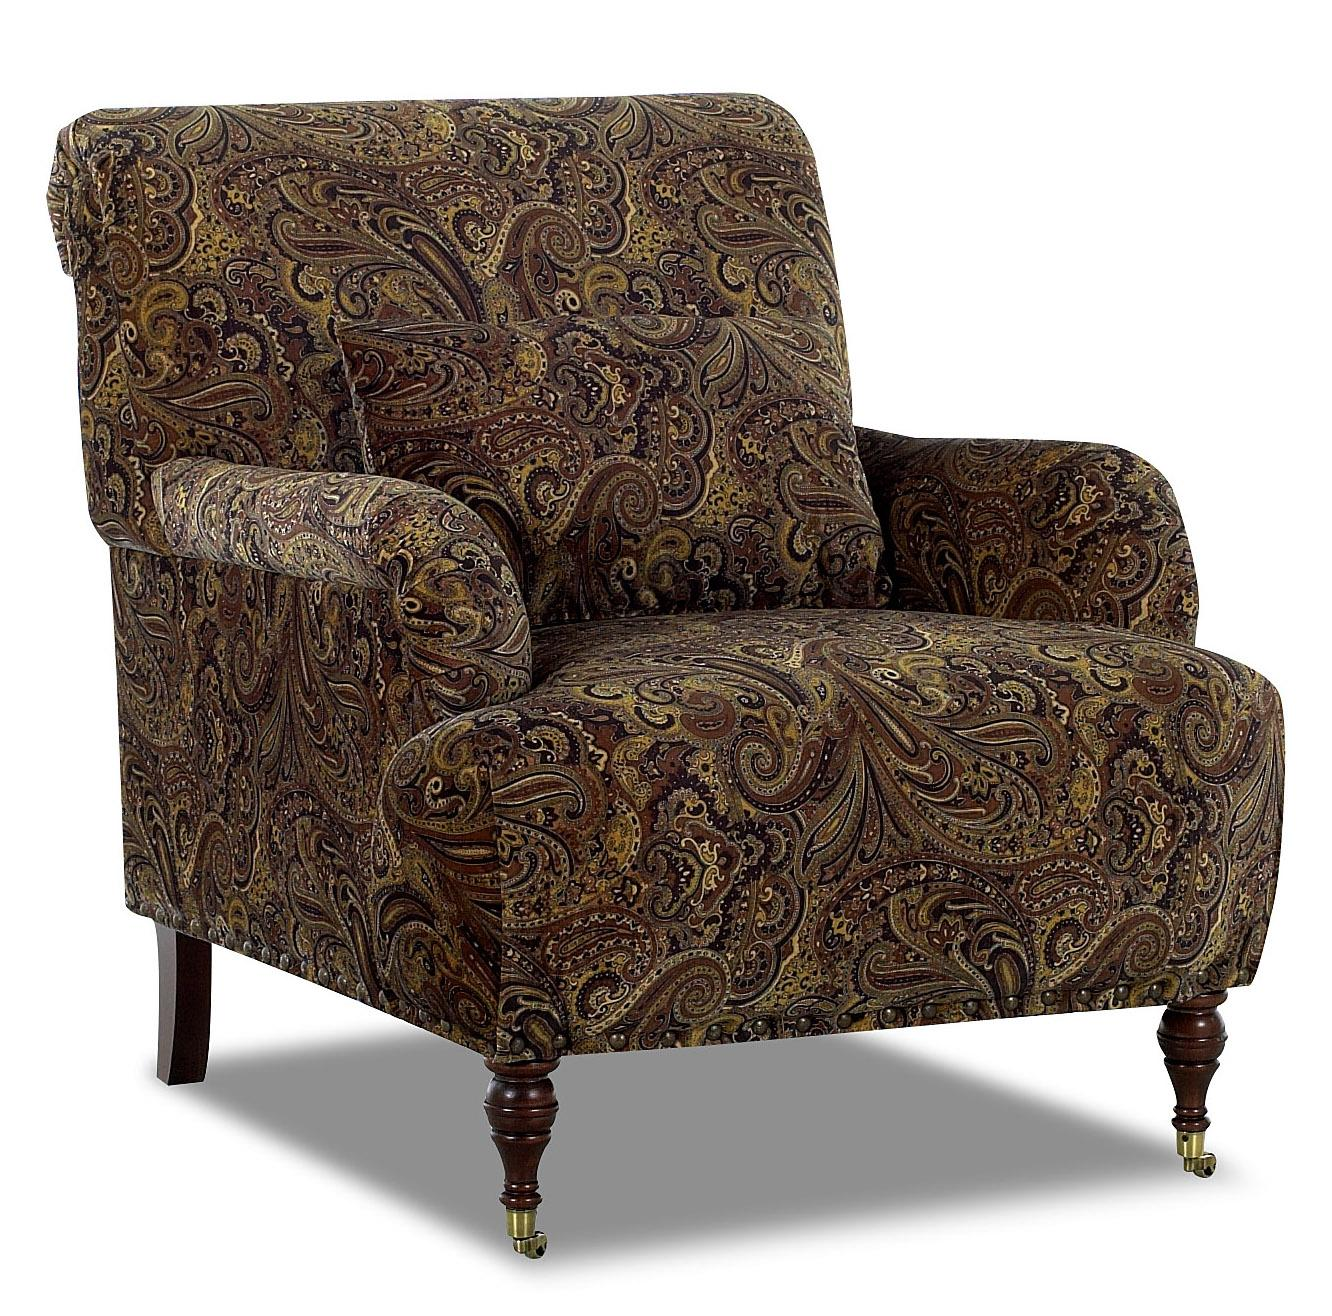 Attractive Traditional Accent Chair With English Arms And Turned Legs With Casters Part 15